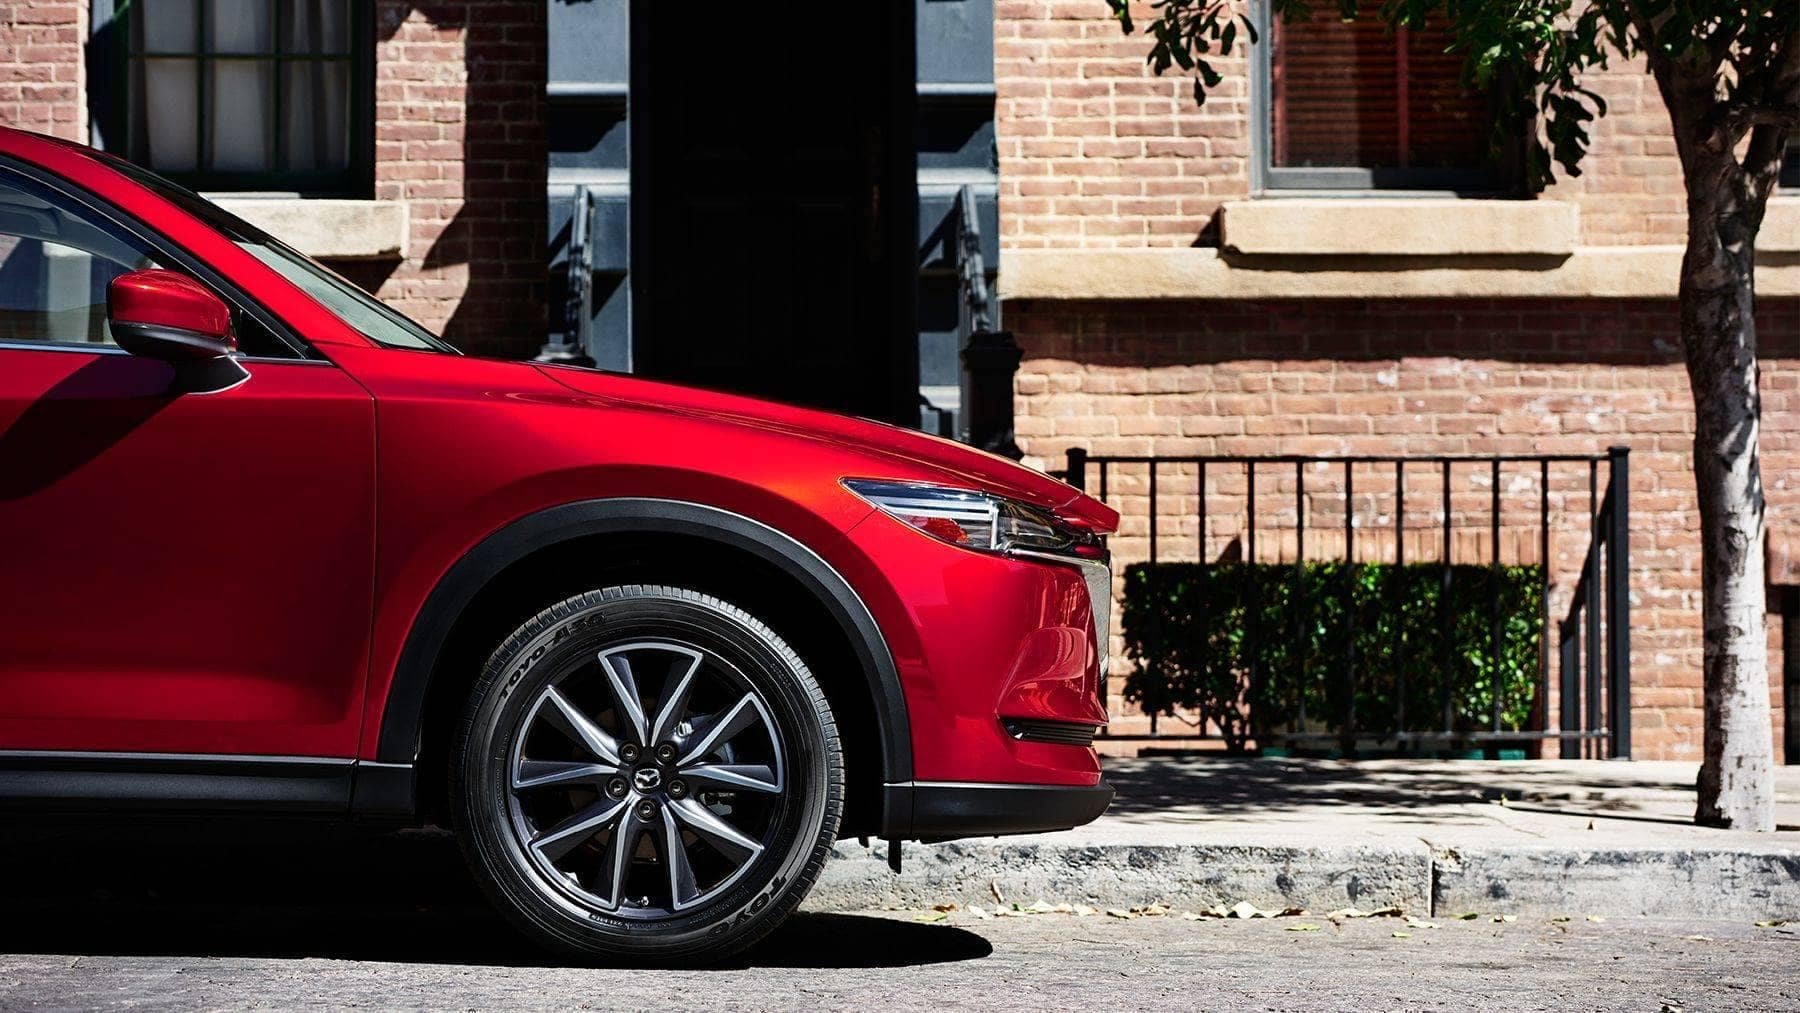 2018 mazda cx 5 side profile street